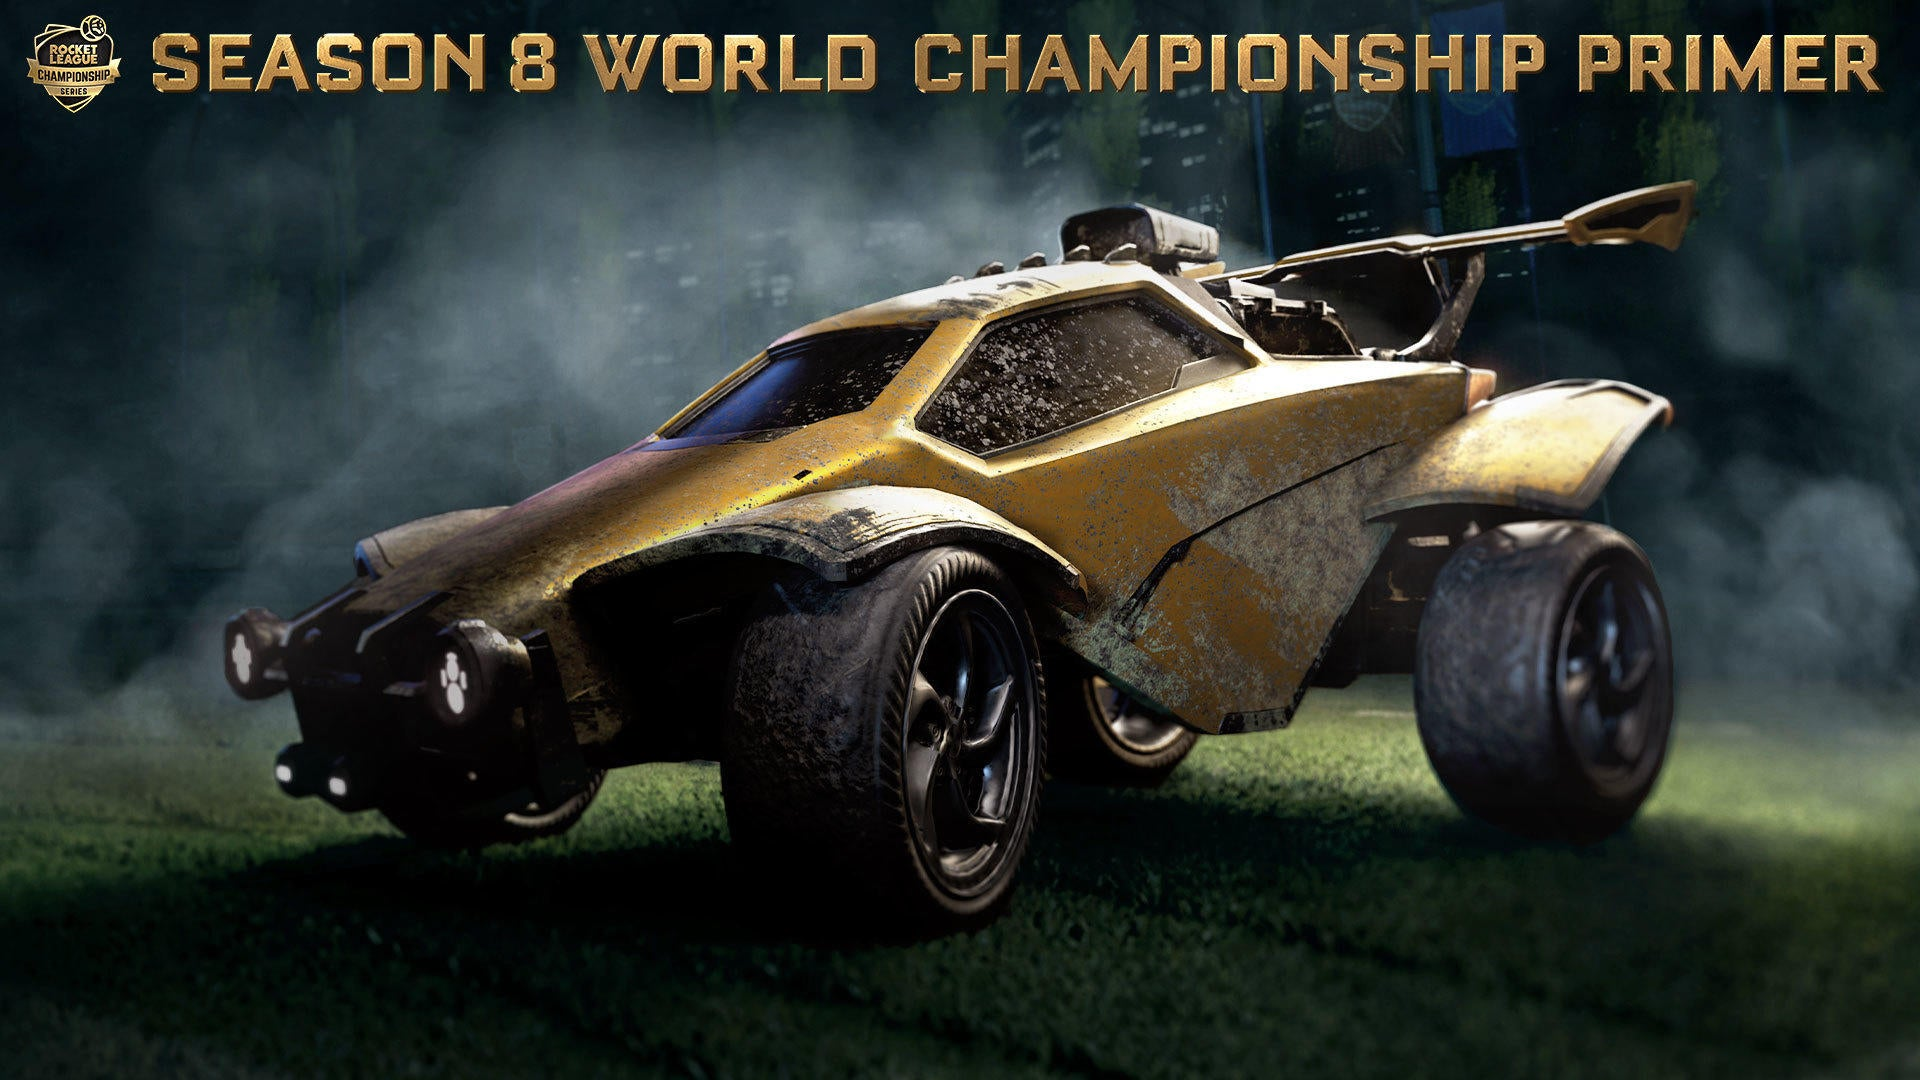 Season 8 World Championship Primer Image